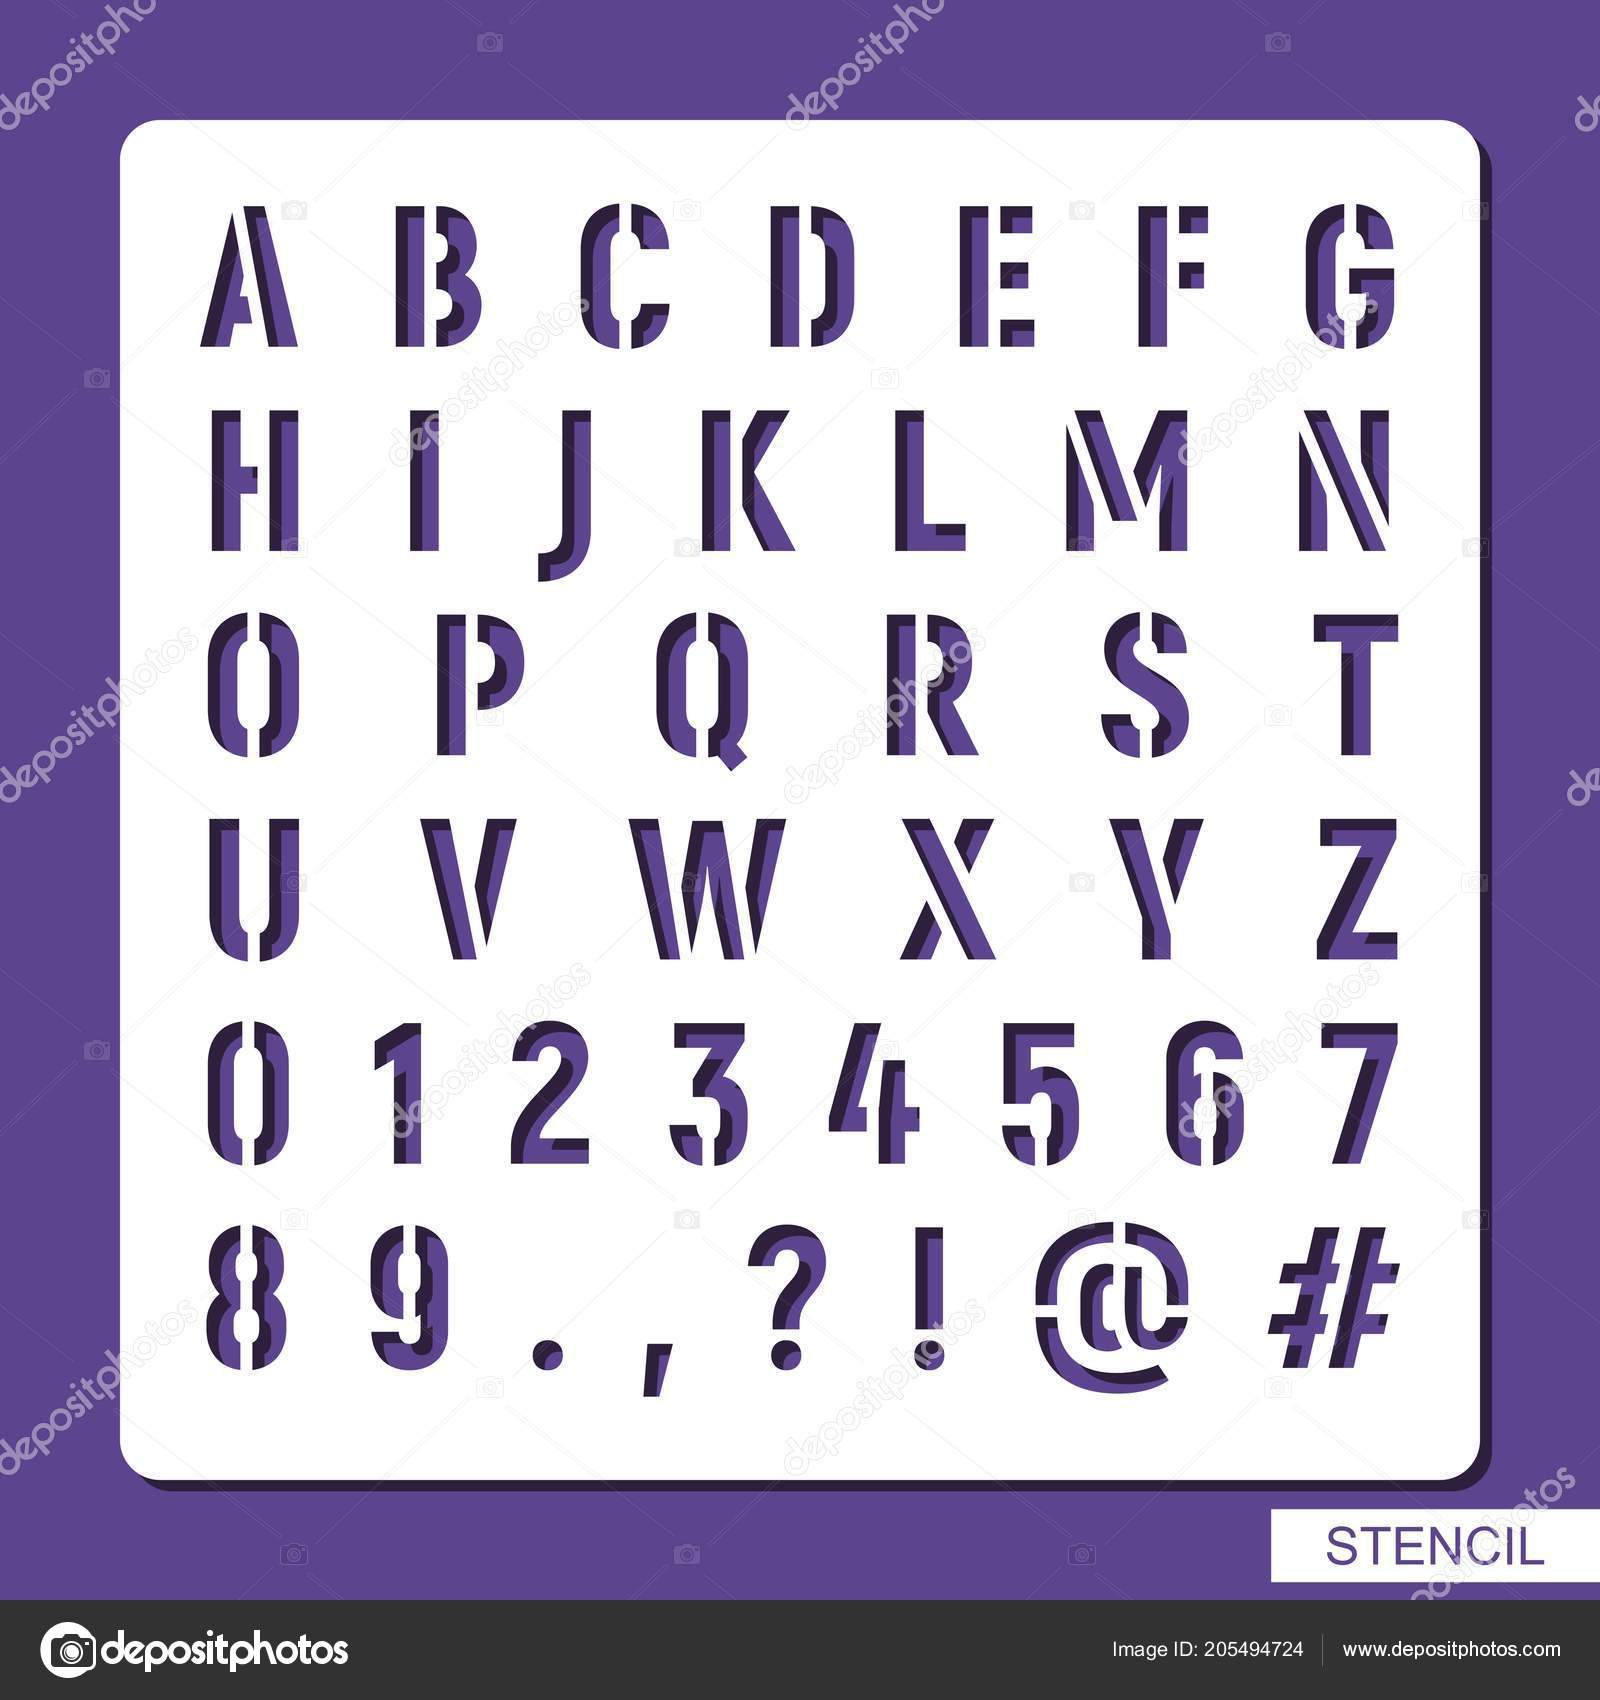 Stencil Alphabet Numbers Symbols Punctuation Marks Template